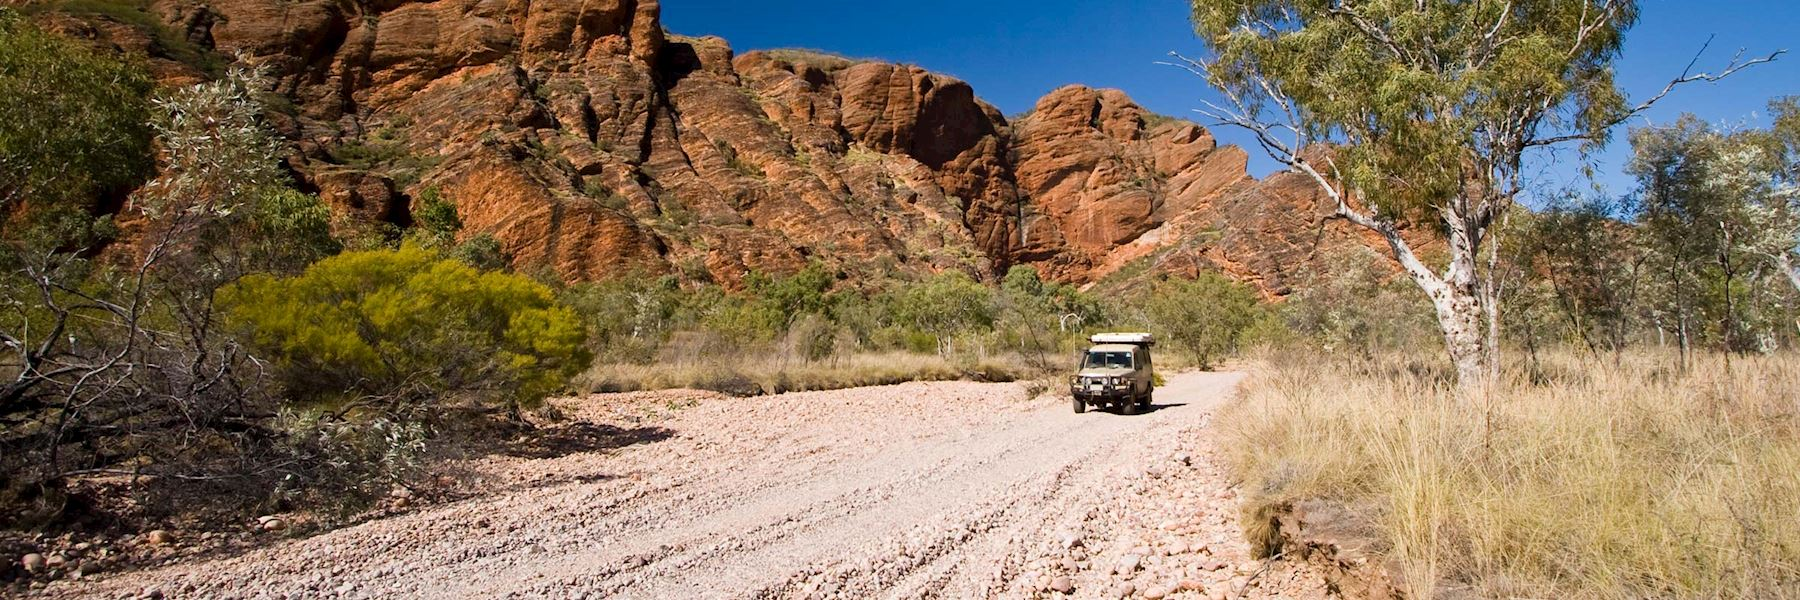 Western Australia vacations